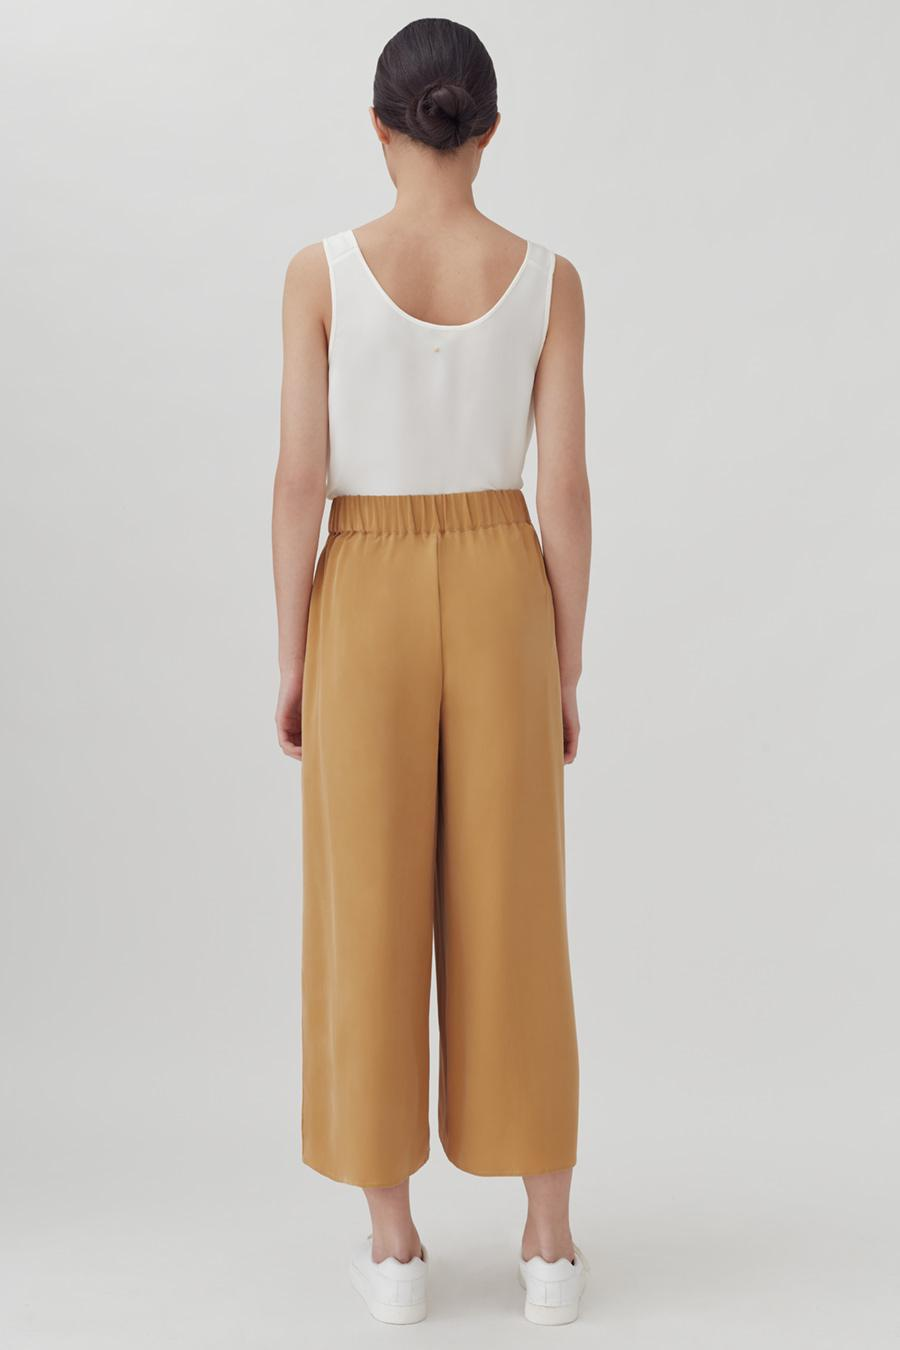 Women's Wide-Leg Cropped Pant in Honey | Size: XS | Washable Silk by Cuyana 2